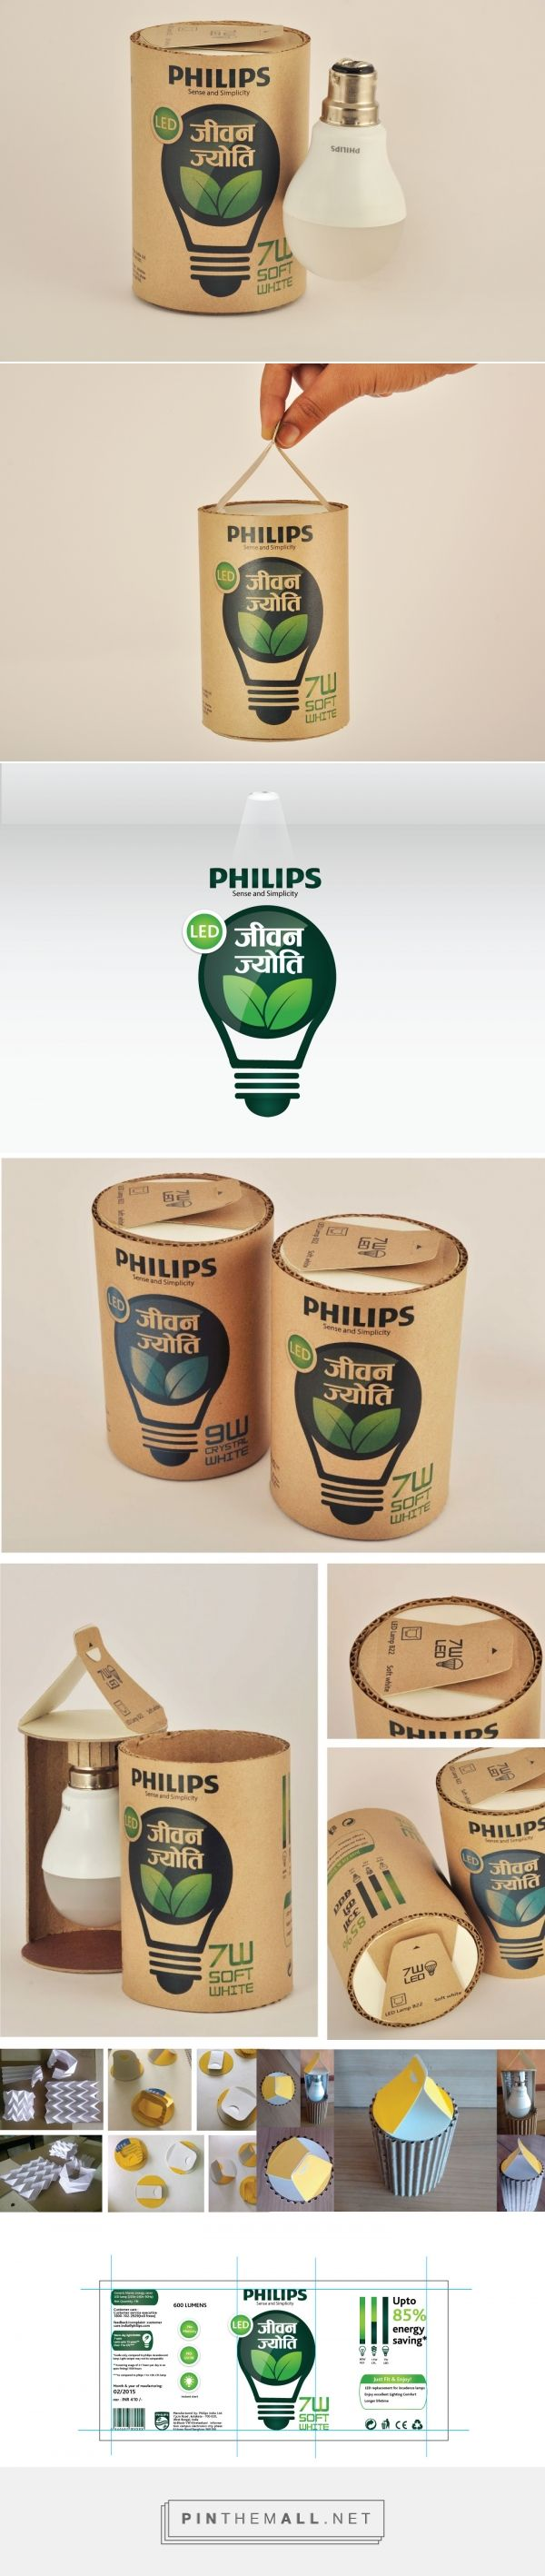 LED light bulb for rural India (Student Project) - Packaging of the World - Creative Package Design Gallery - http://www.packagingoftheworld.com/2016/12/led-light-bulb-for-rural-india-student.html